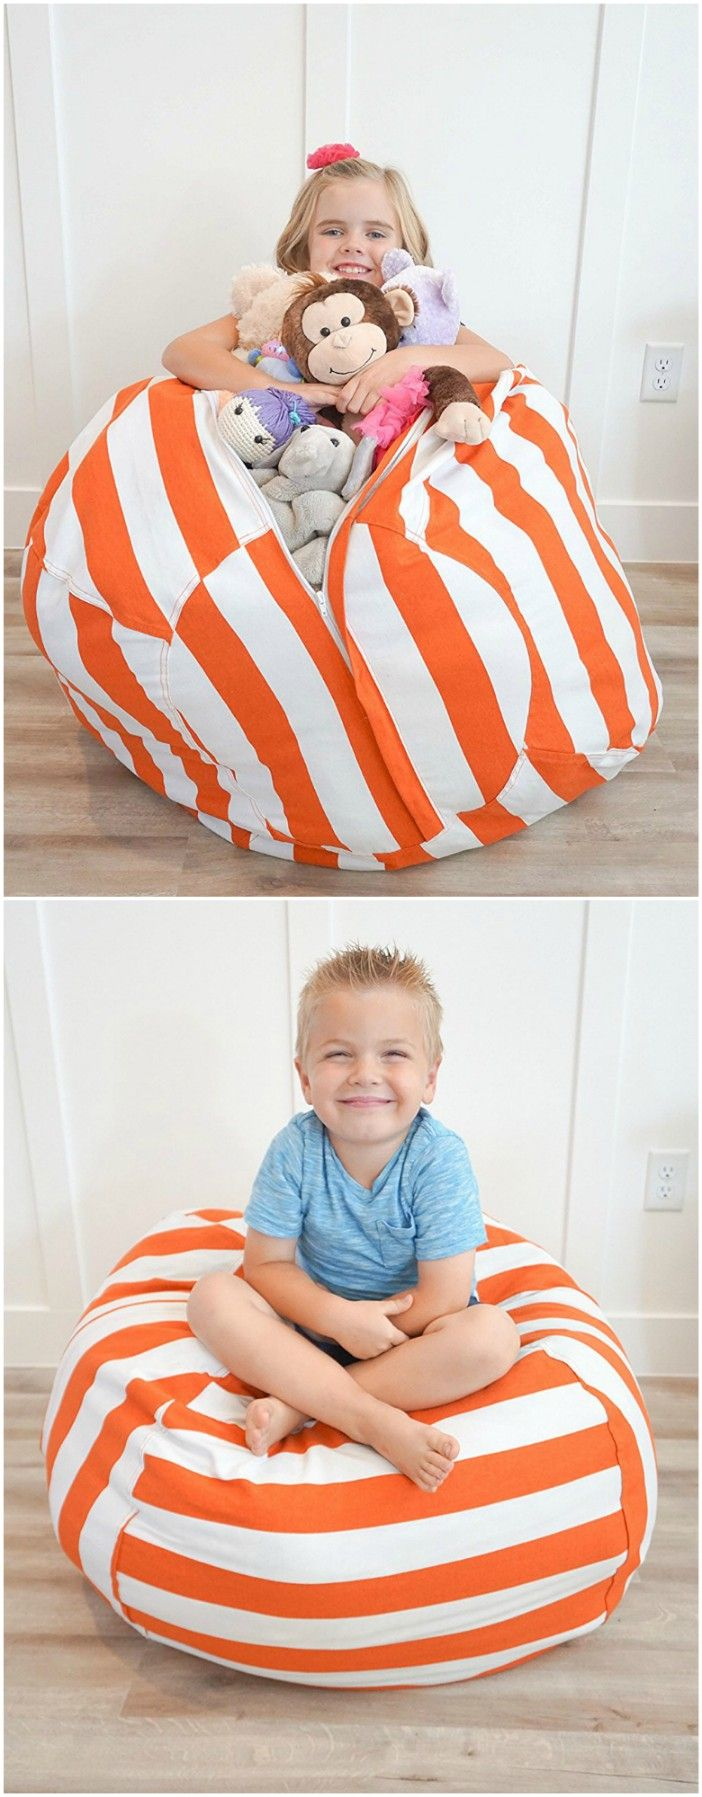 10 stylish ways of hiding storage in plain sight #small #space #home #decor #furniture #stuffed  #animal #kid #bean #bag